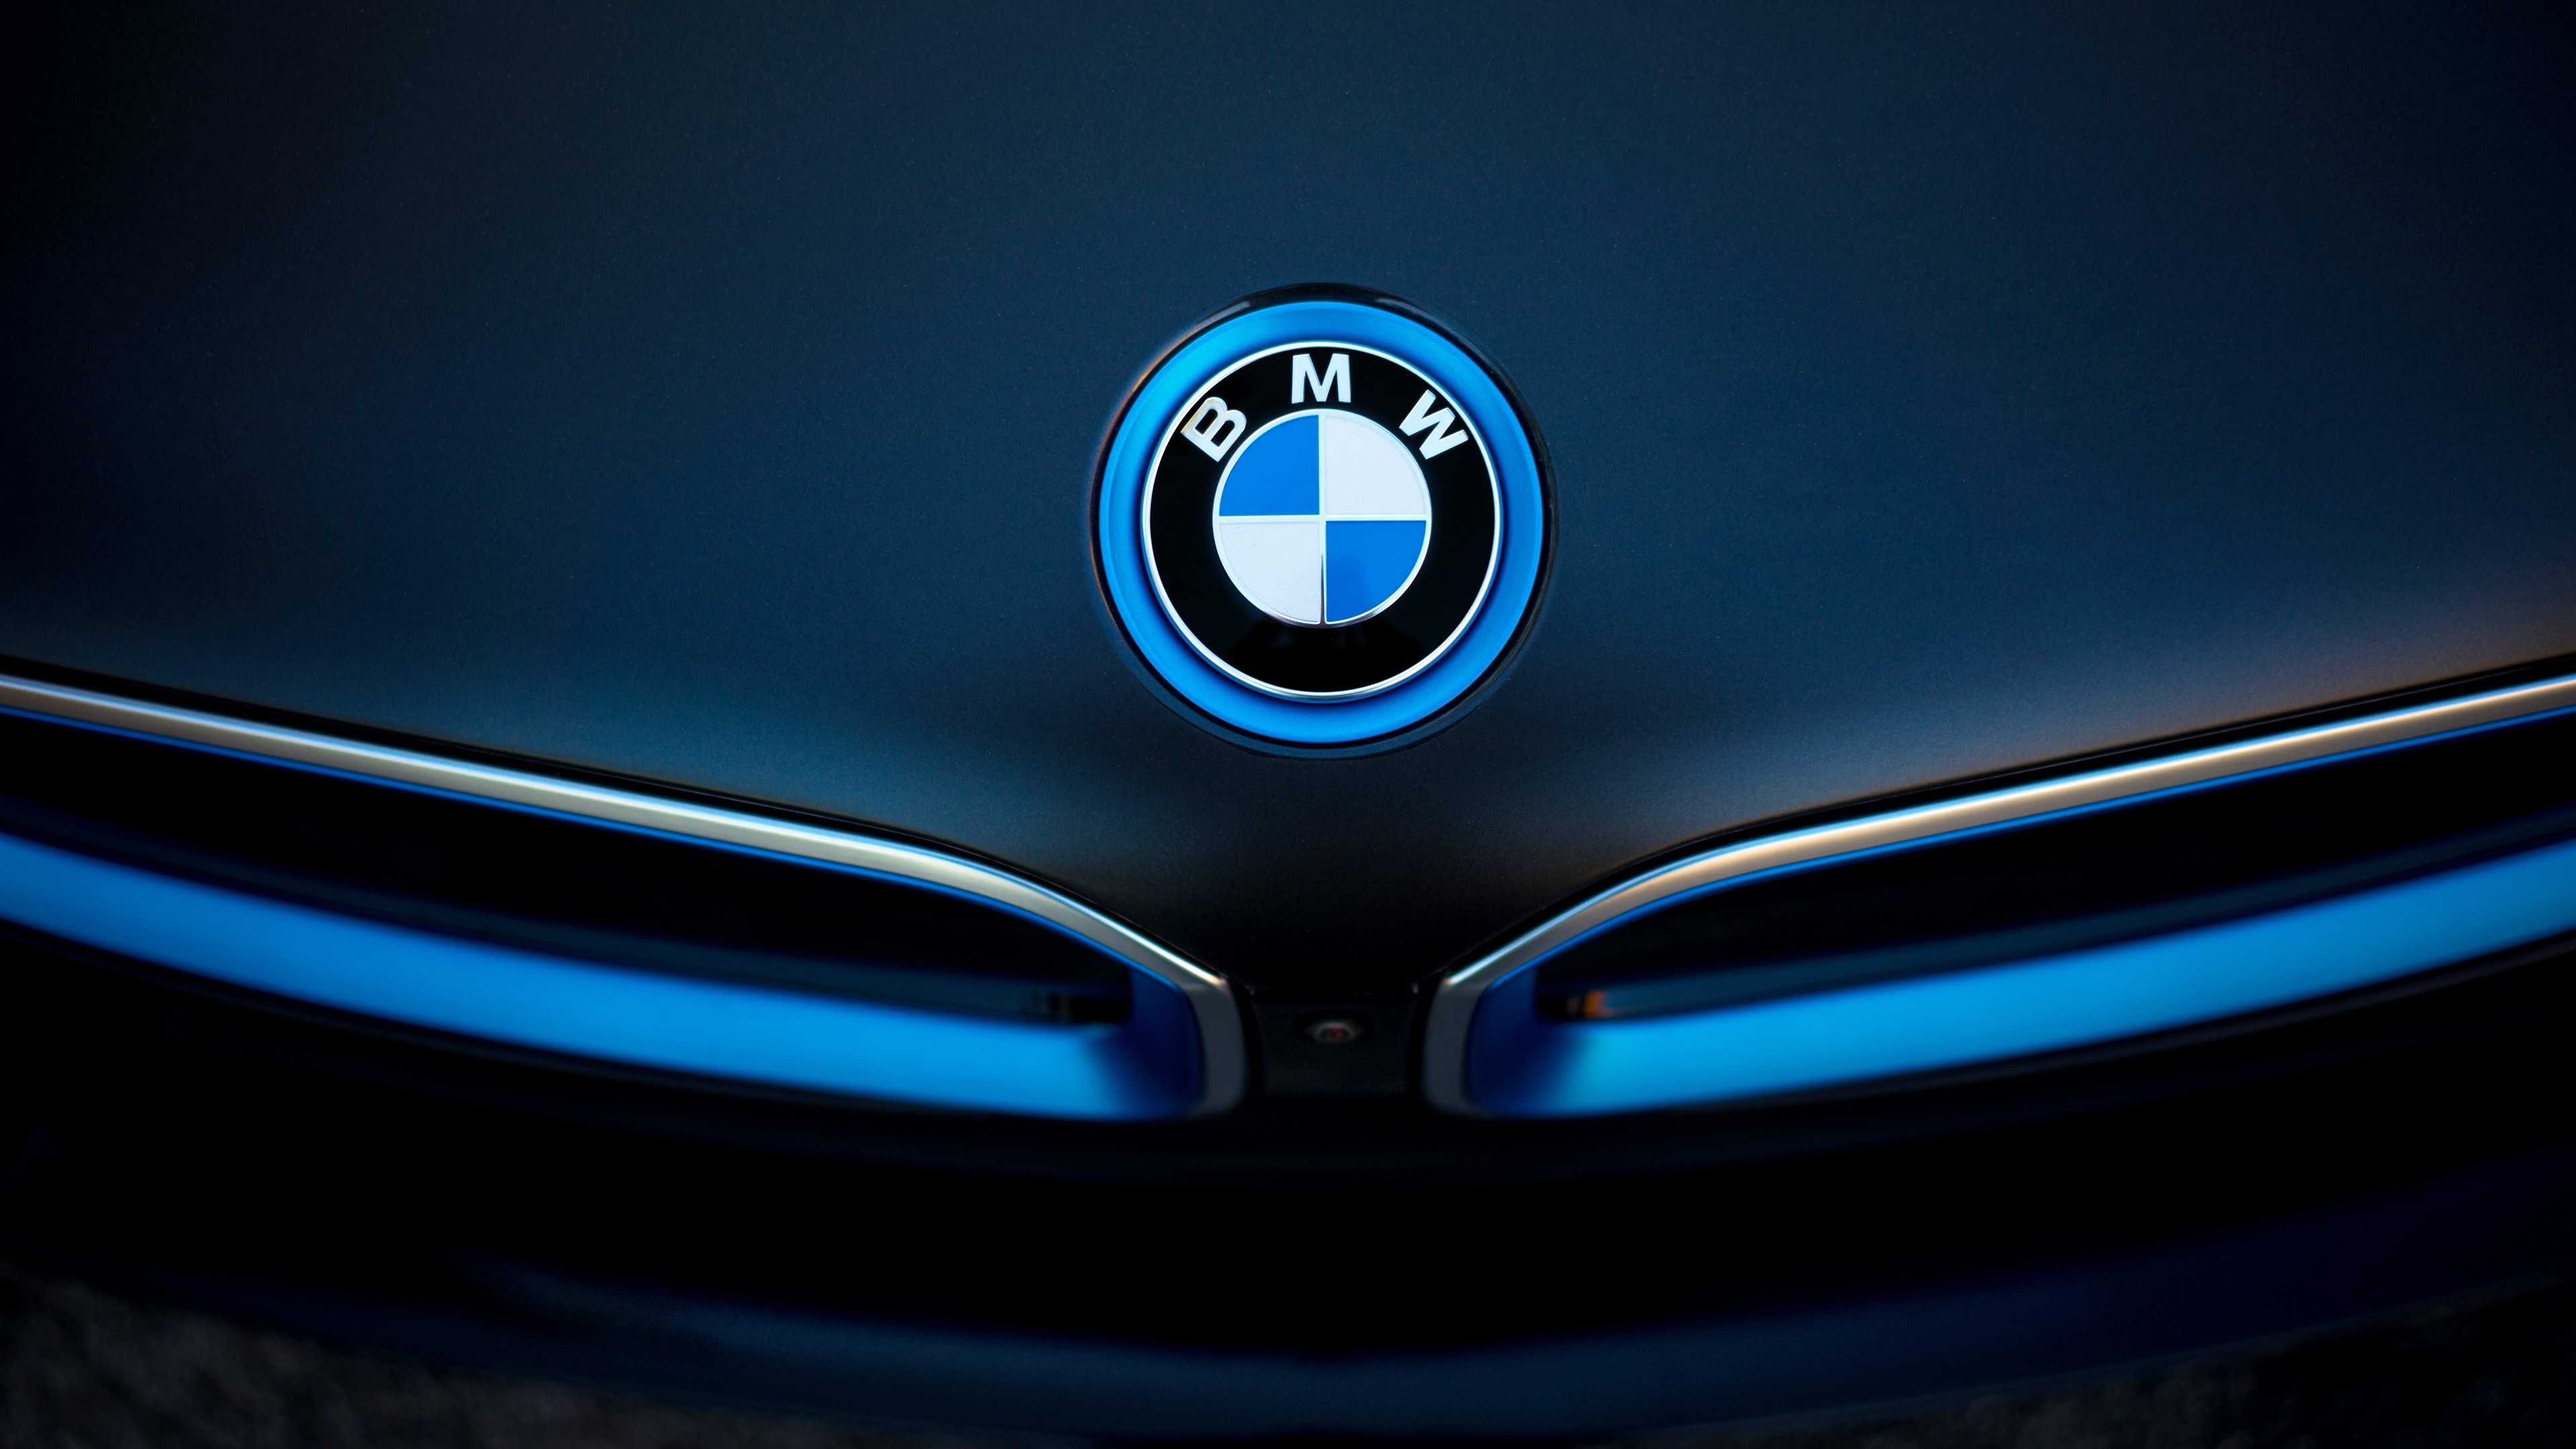 Beautiful Wallpaper High Resolution Bmw - 474565  2018_284349.jpg